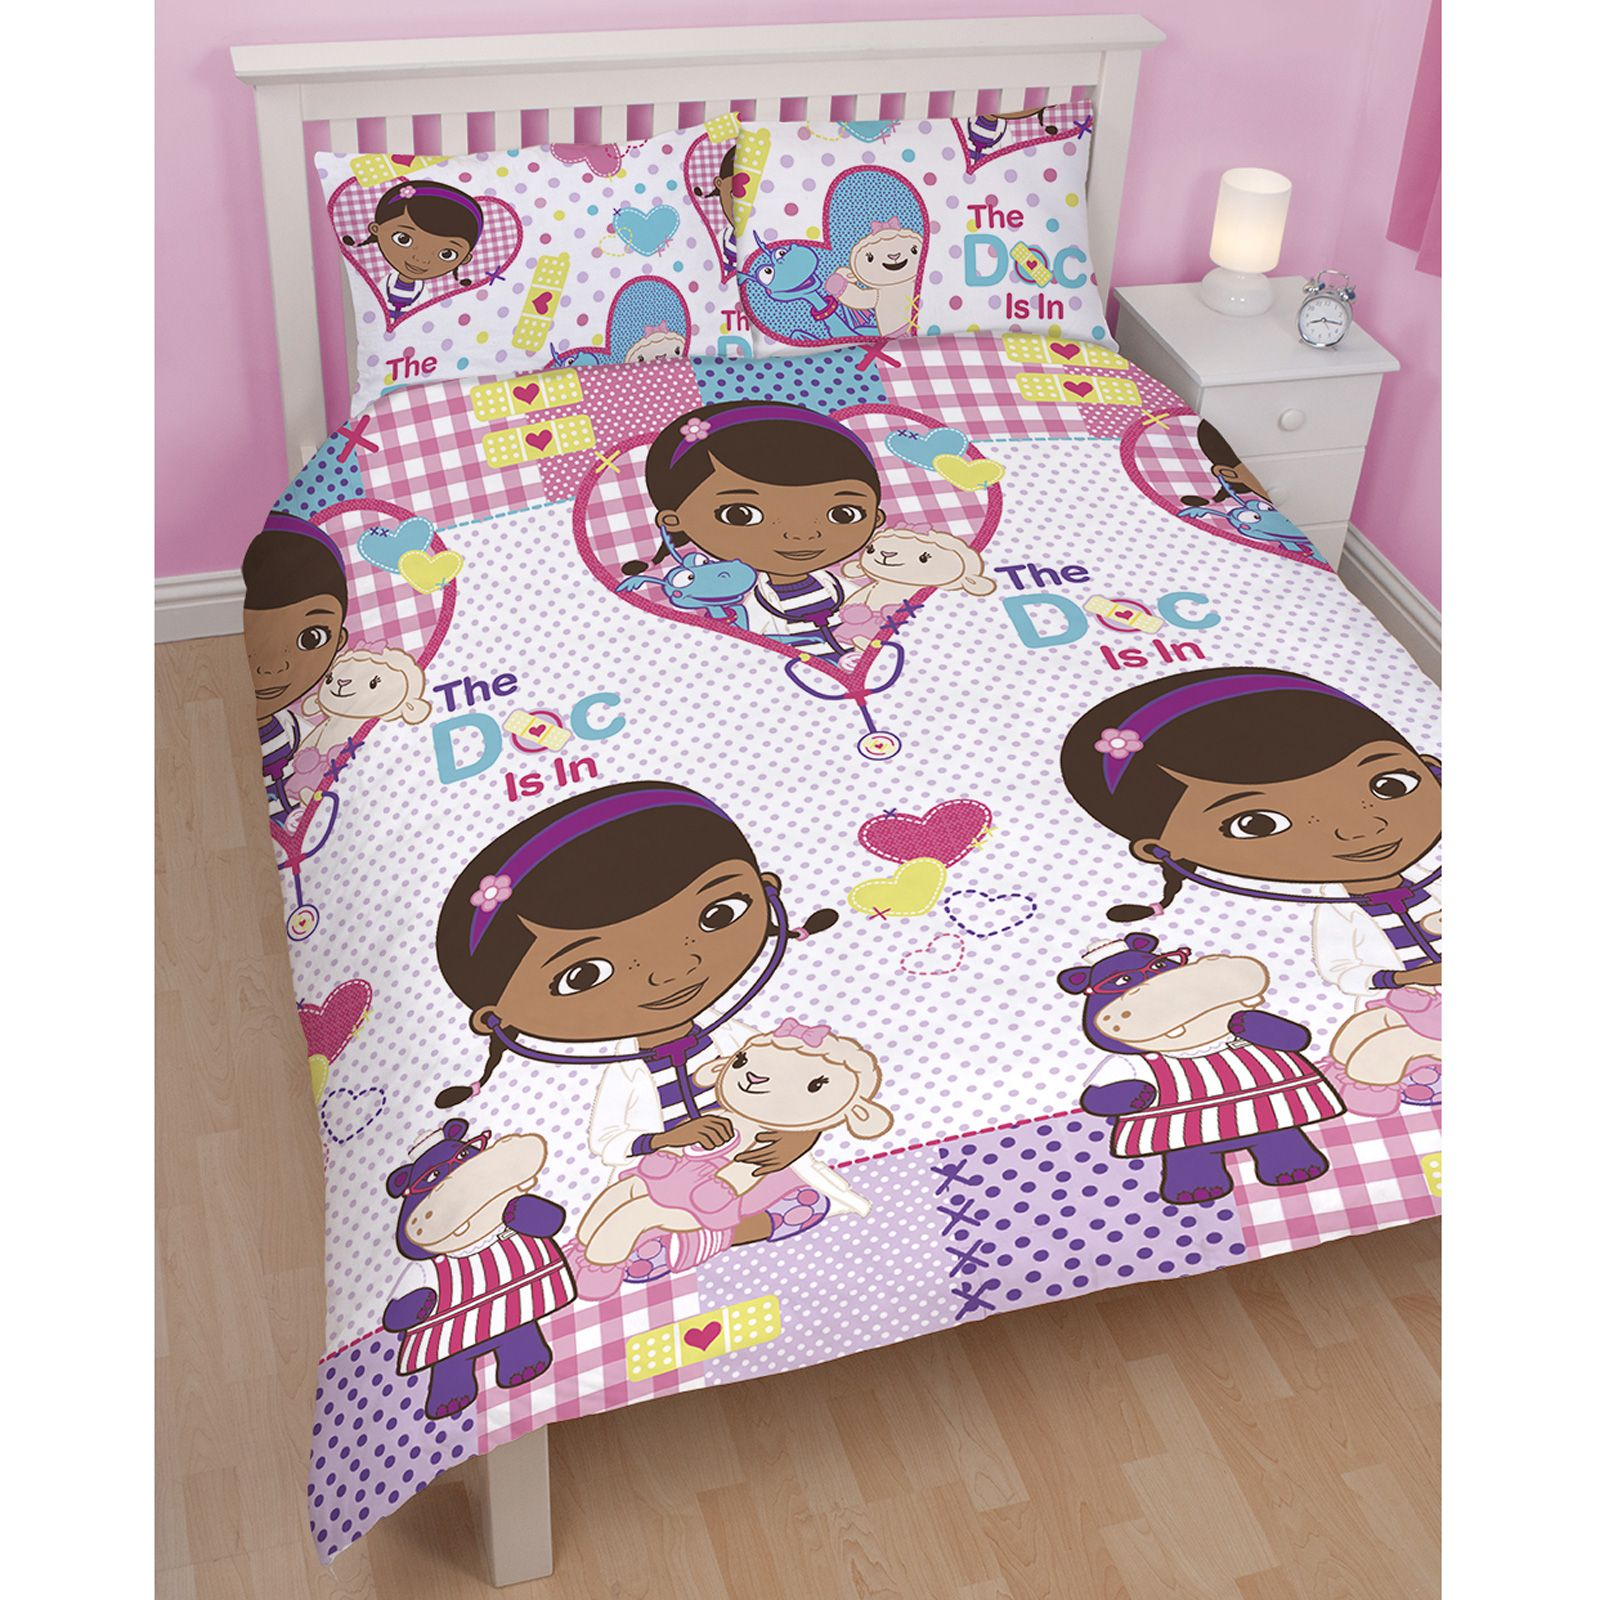 doc mcstuffins upholstered chair uk how to reupholster kitchen chairs double duvet cover and pilowcases set new